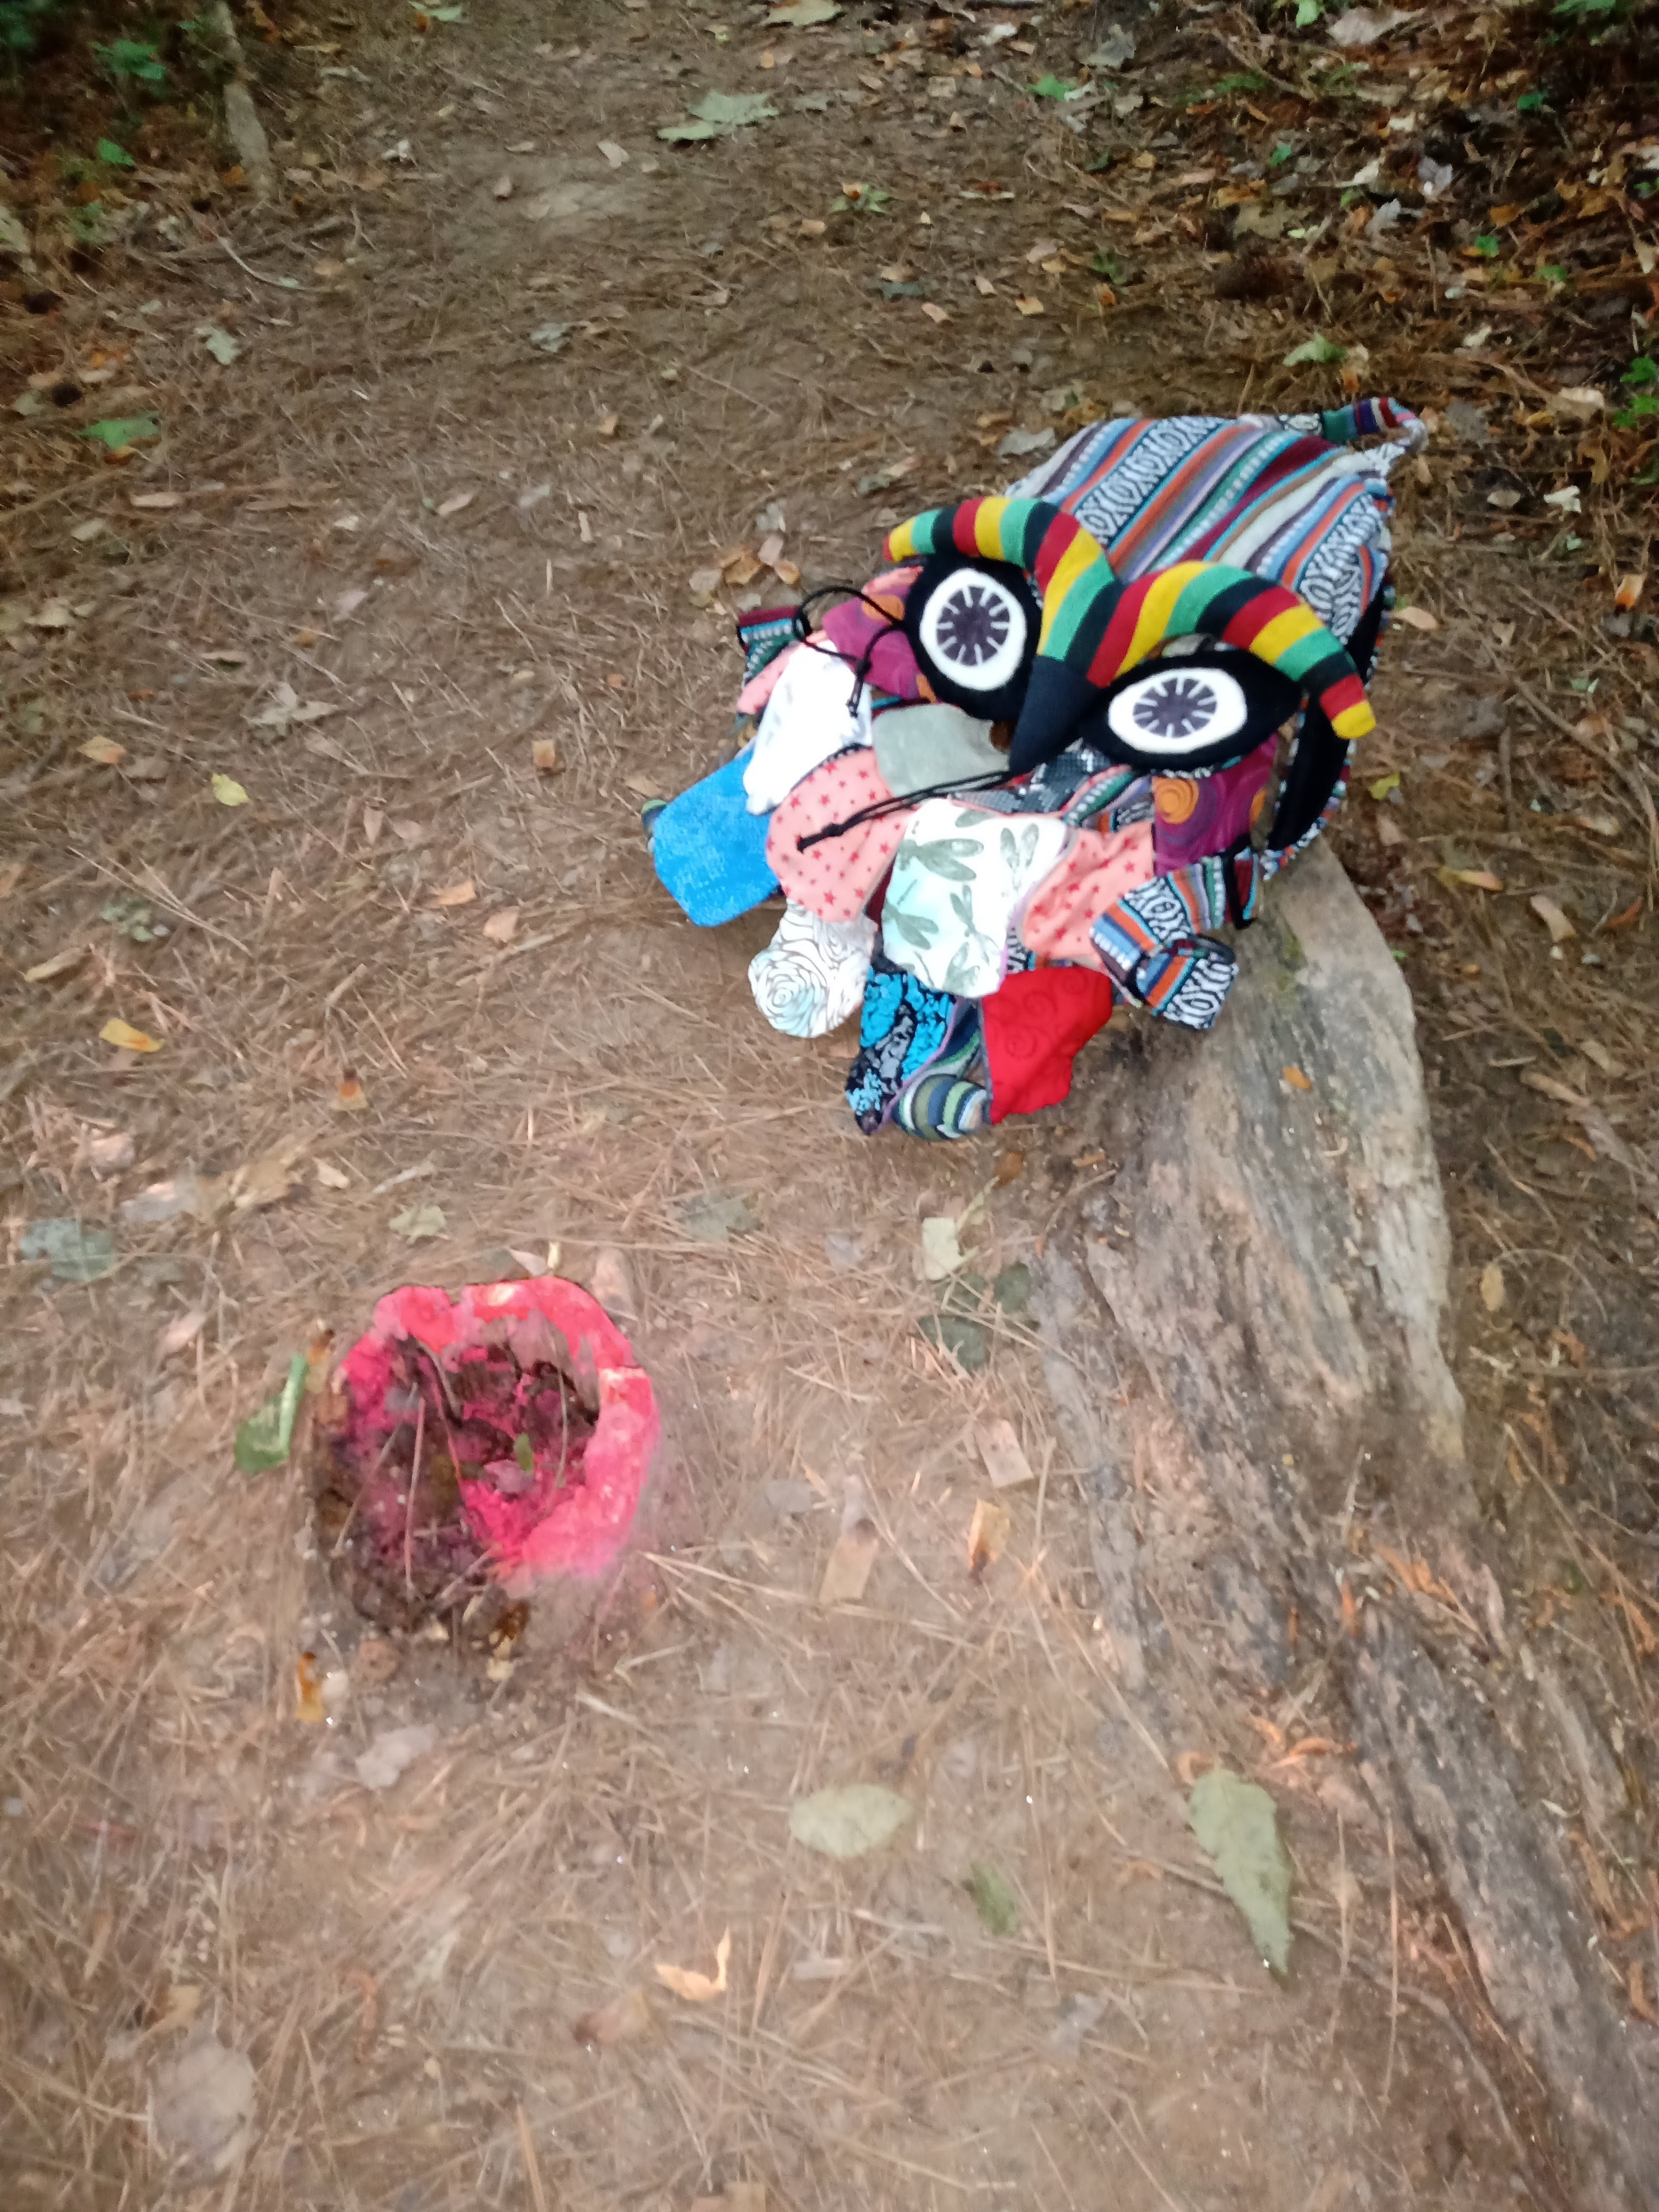 Colorful backpack that looks like an owl on the ground near a stump that's painted red as a warning because it could be a tripping hazard